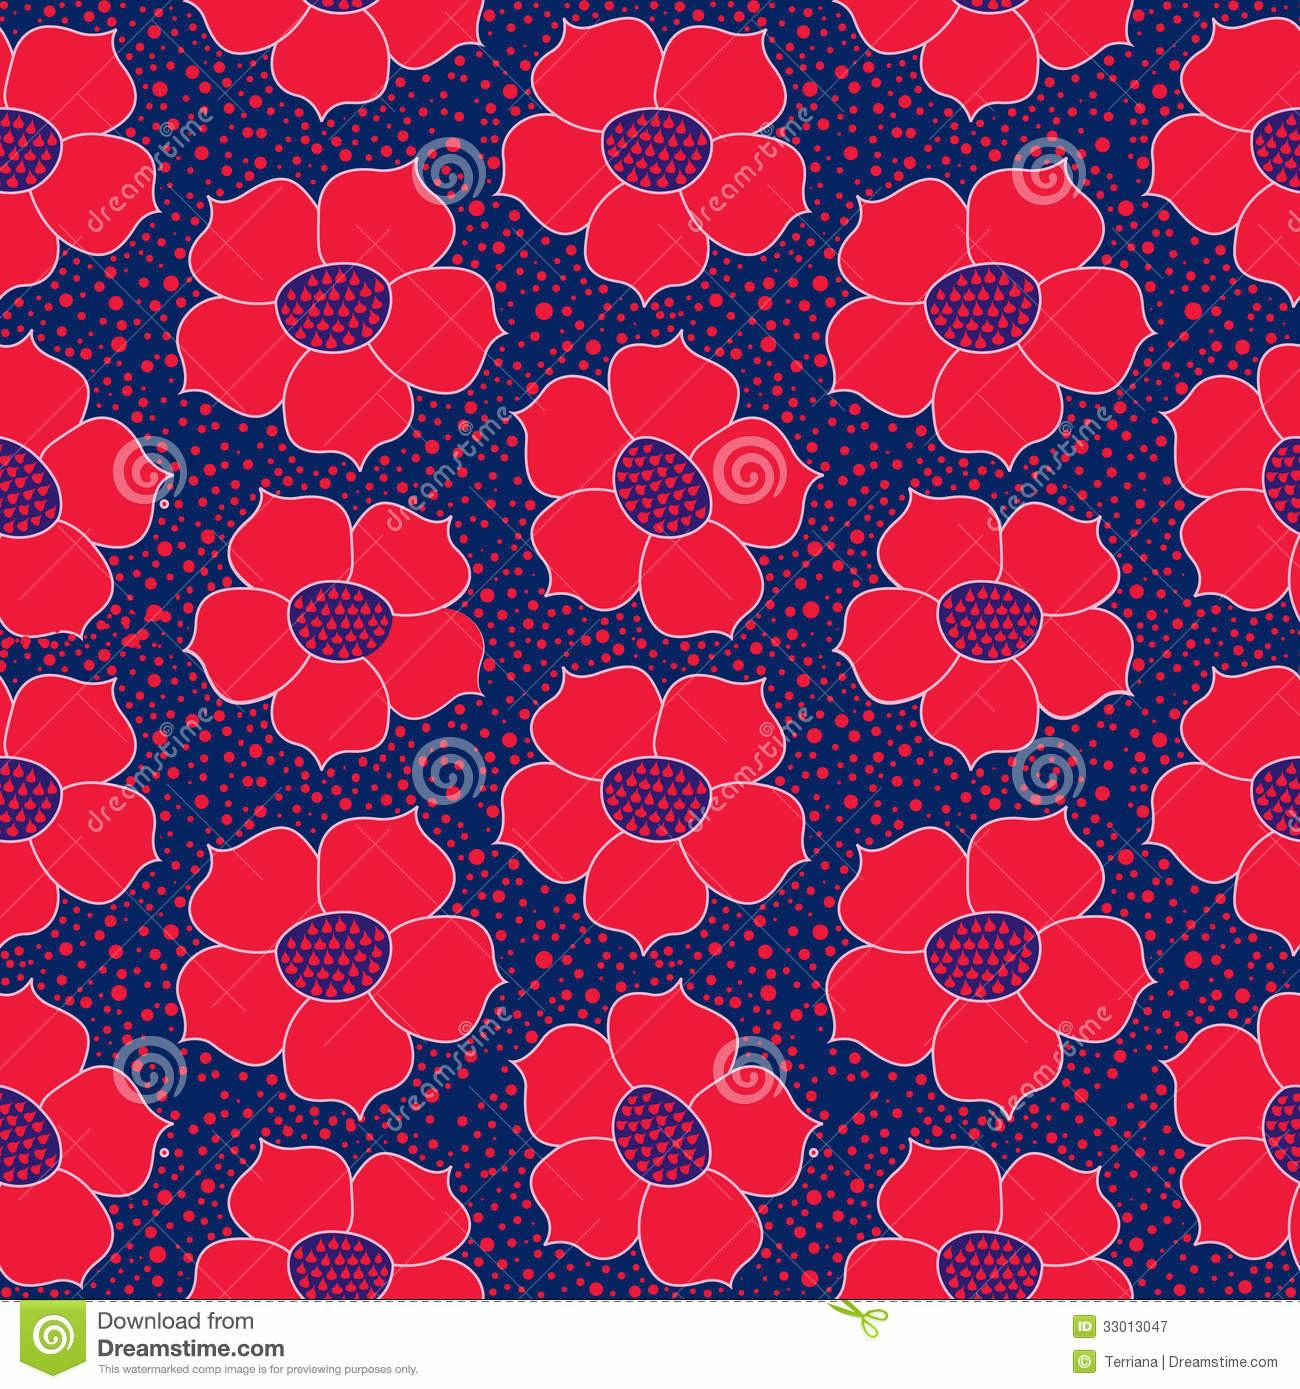 Floral Seamless Red Flower Pattern Royalty